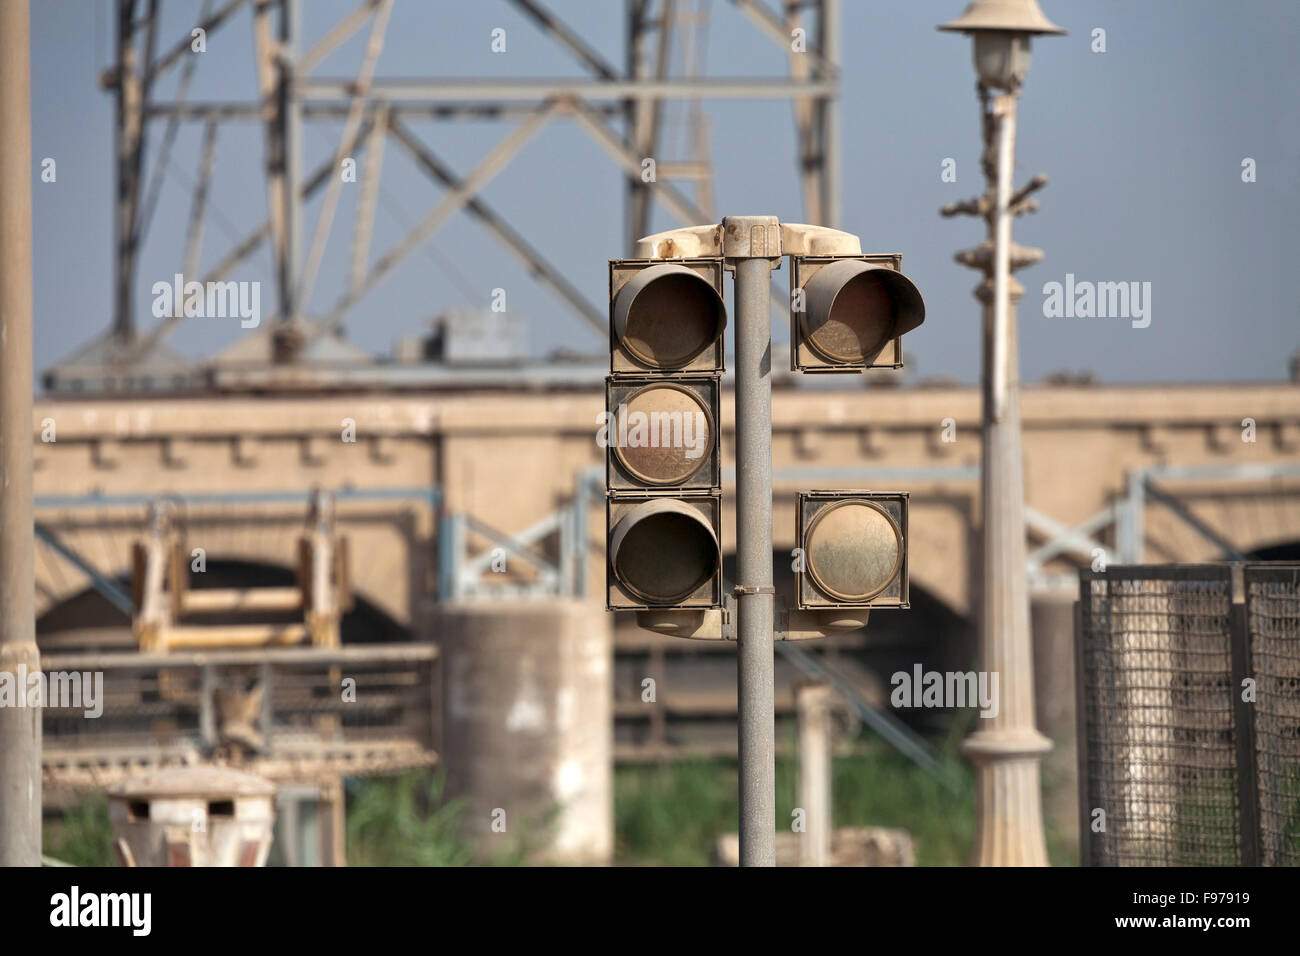 warning lights at a bridge on the Nile in Middle Egypt - Stock Image